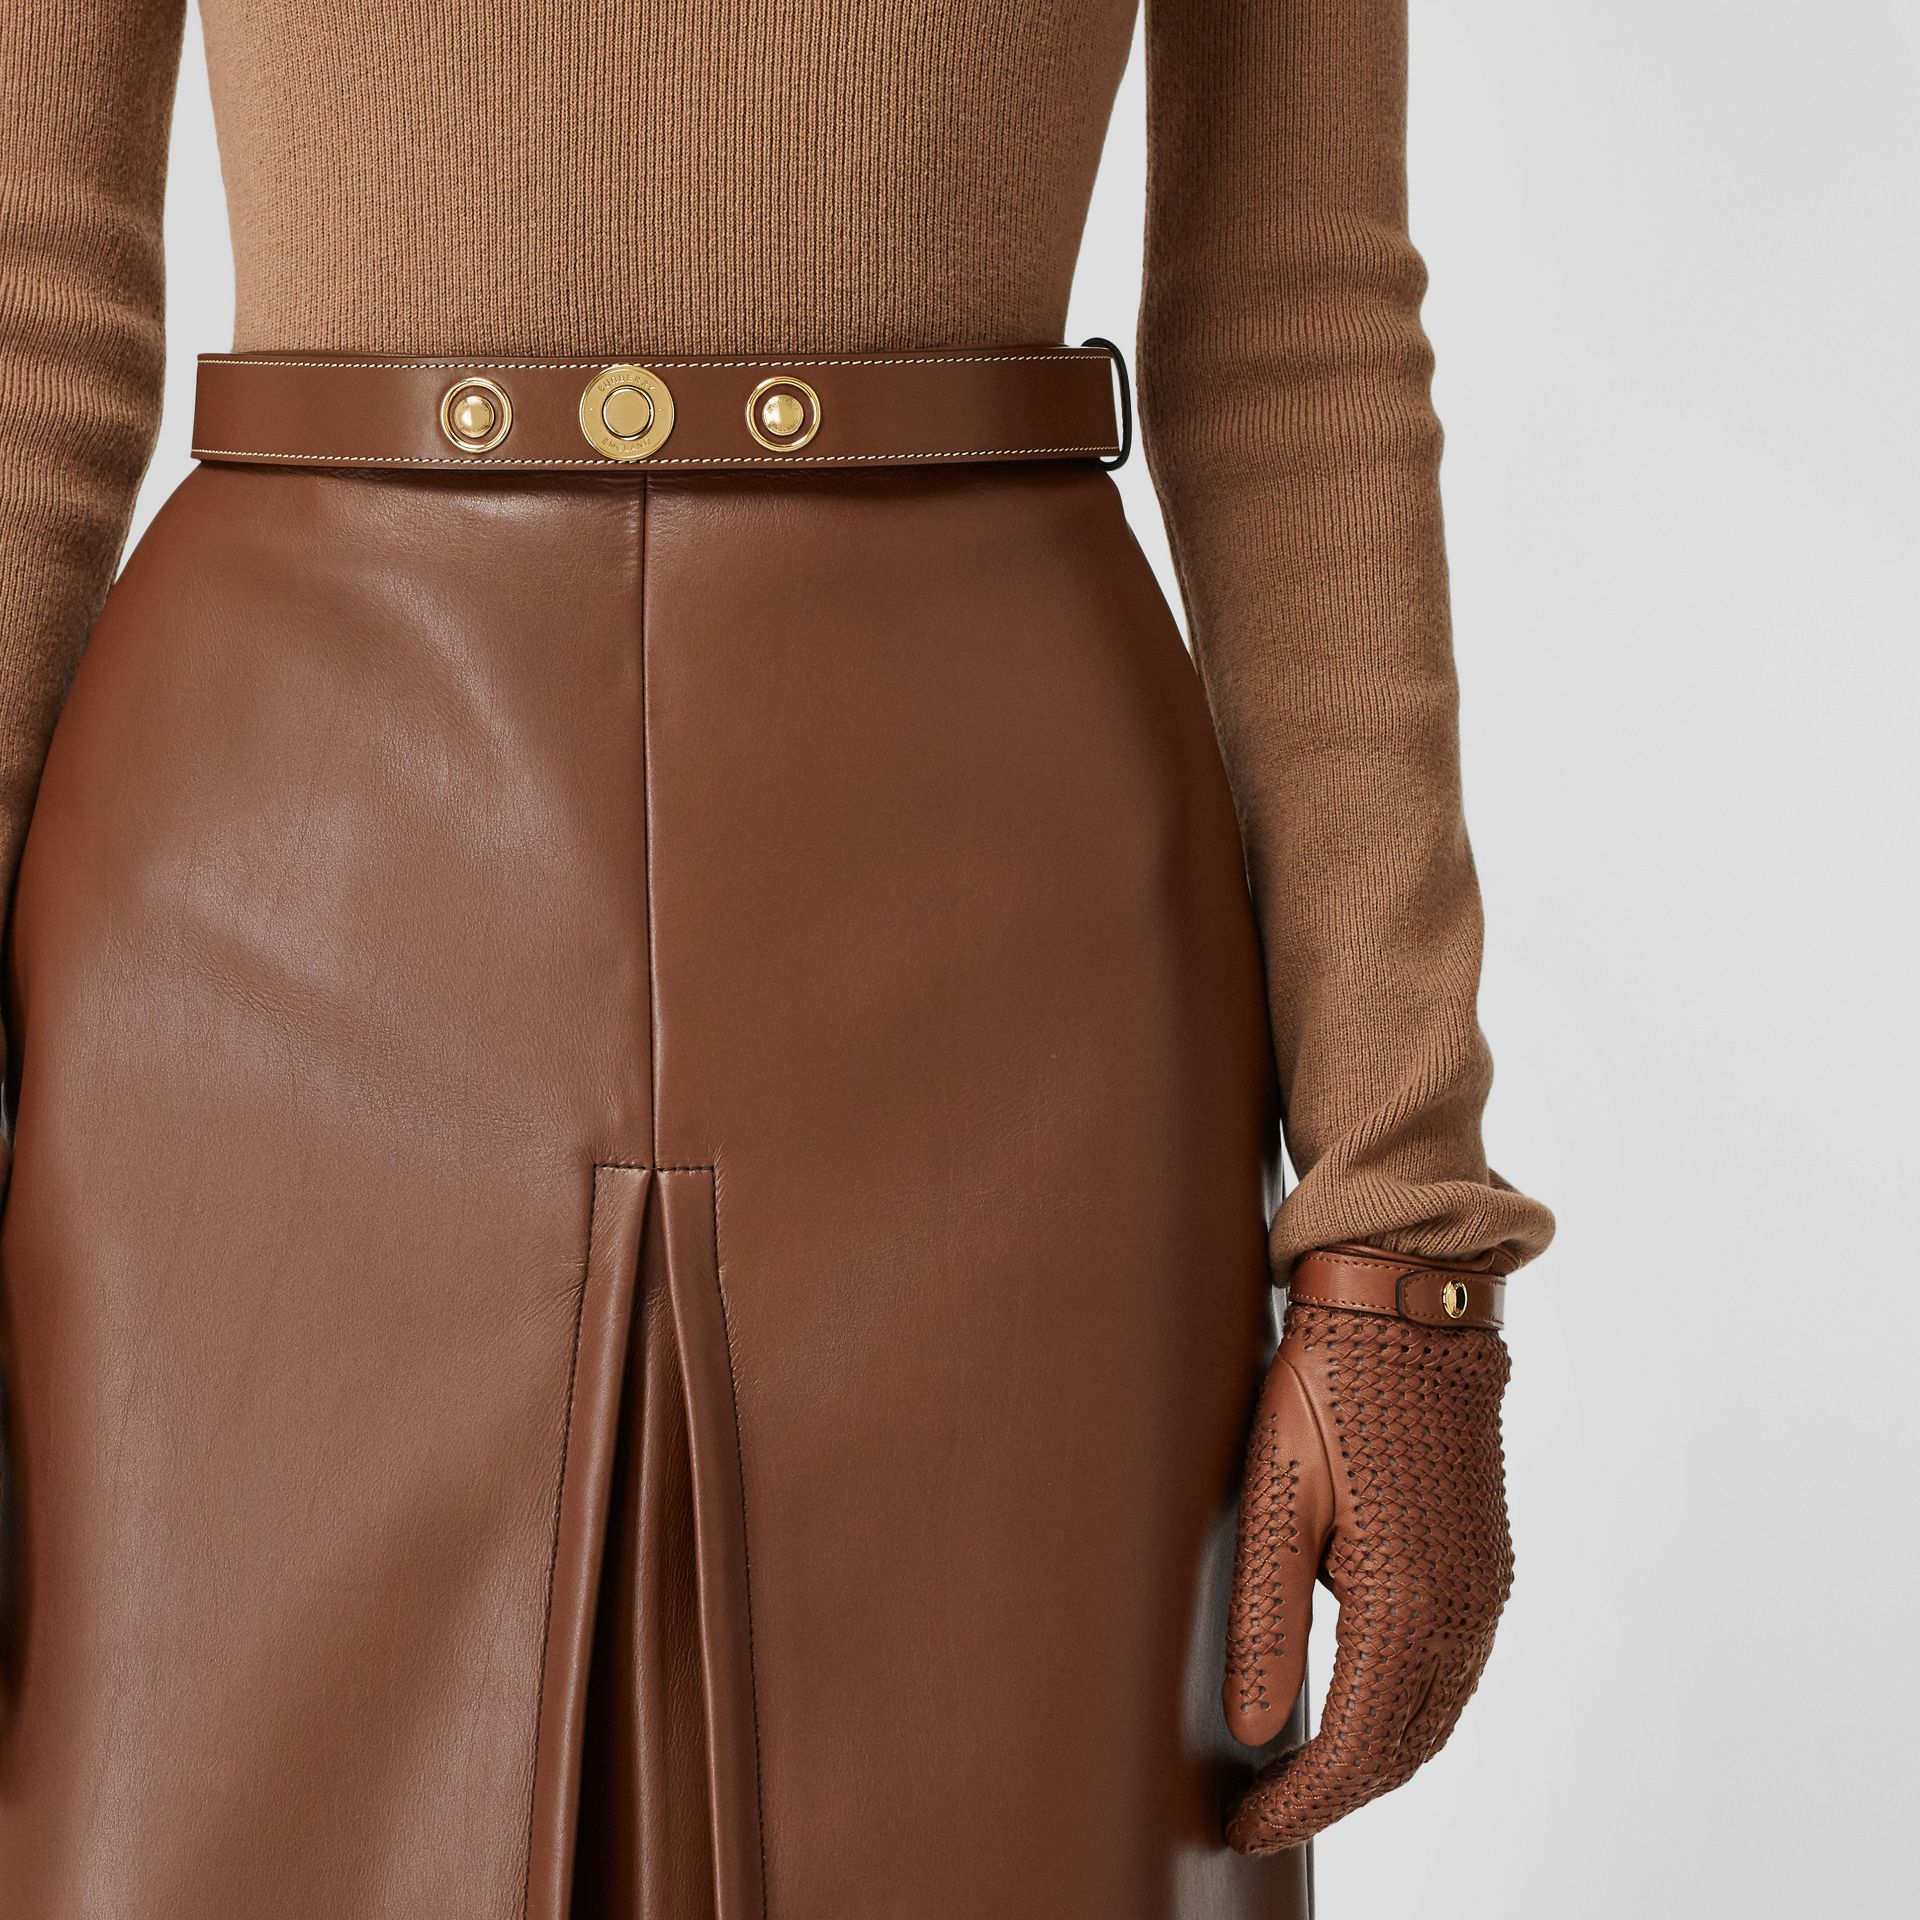 Triple Stud Leather Belt in Tan - Women | Burberry - gallery image 2